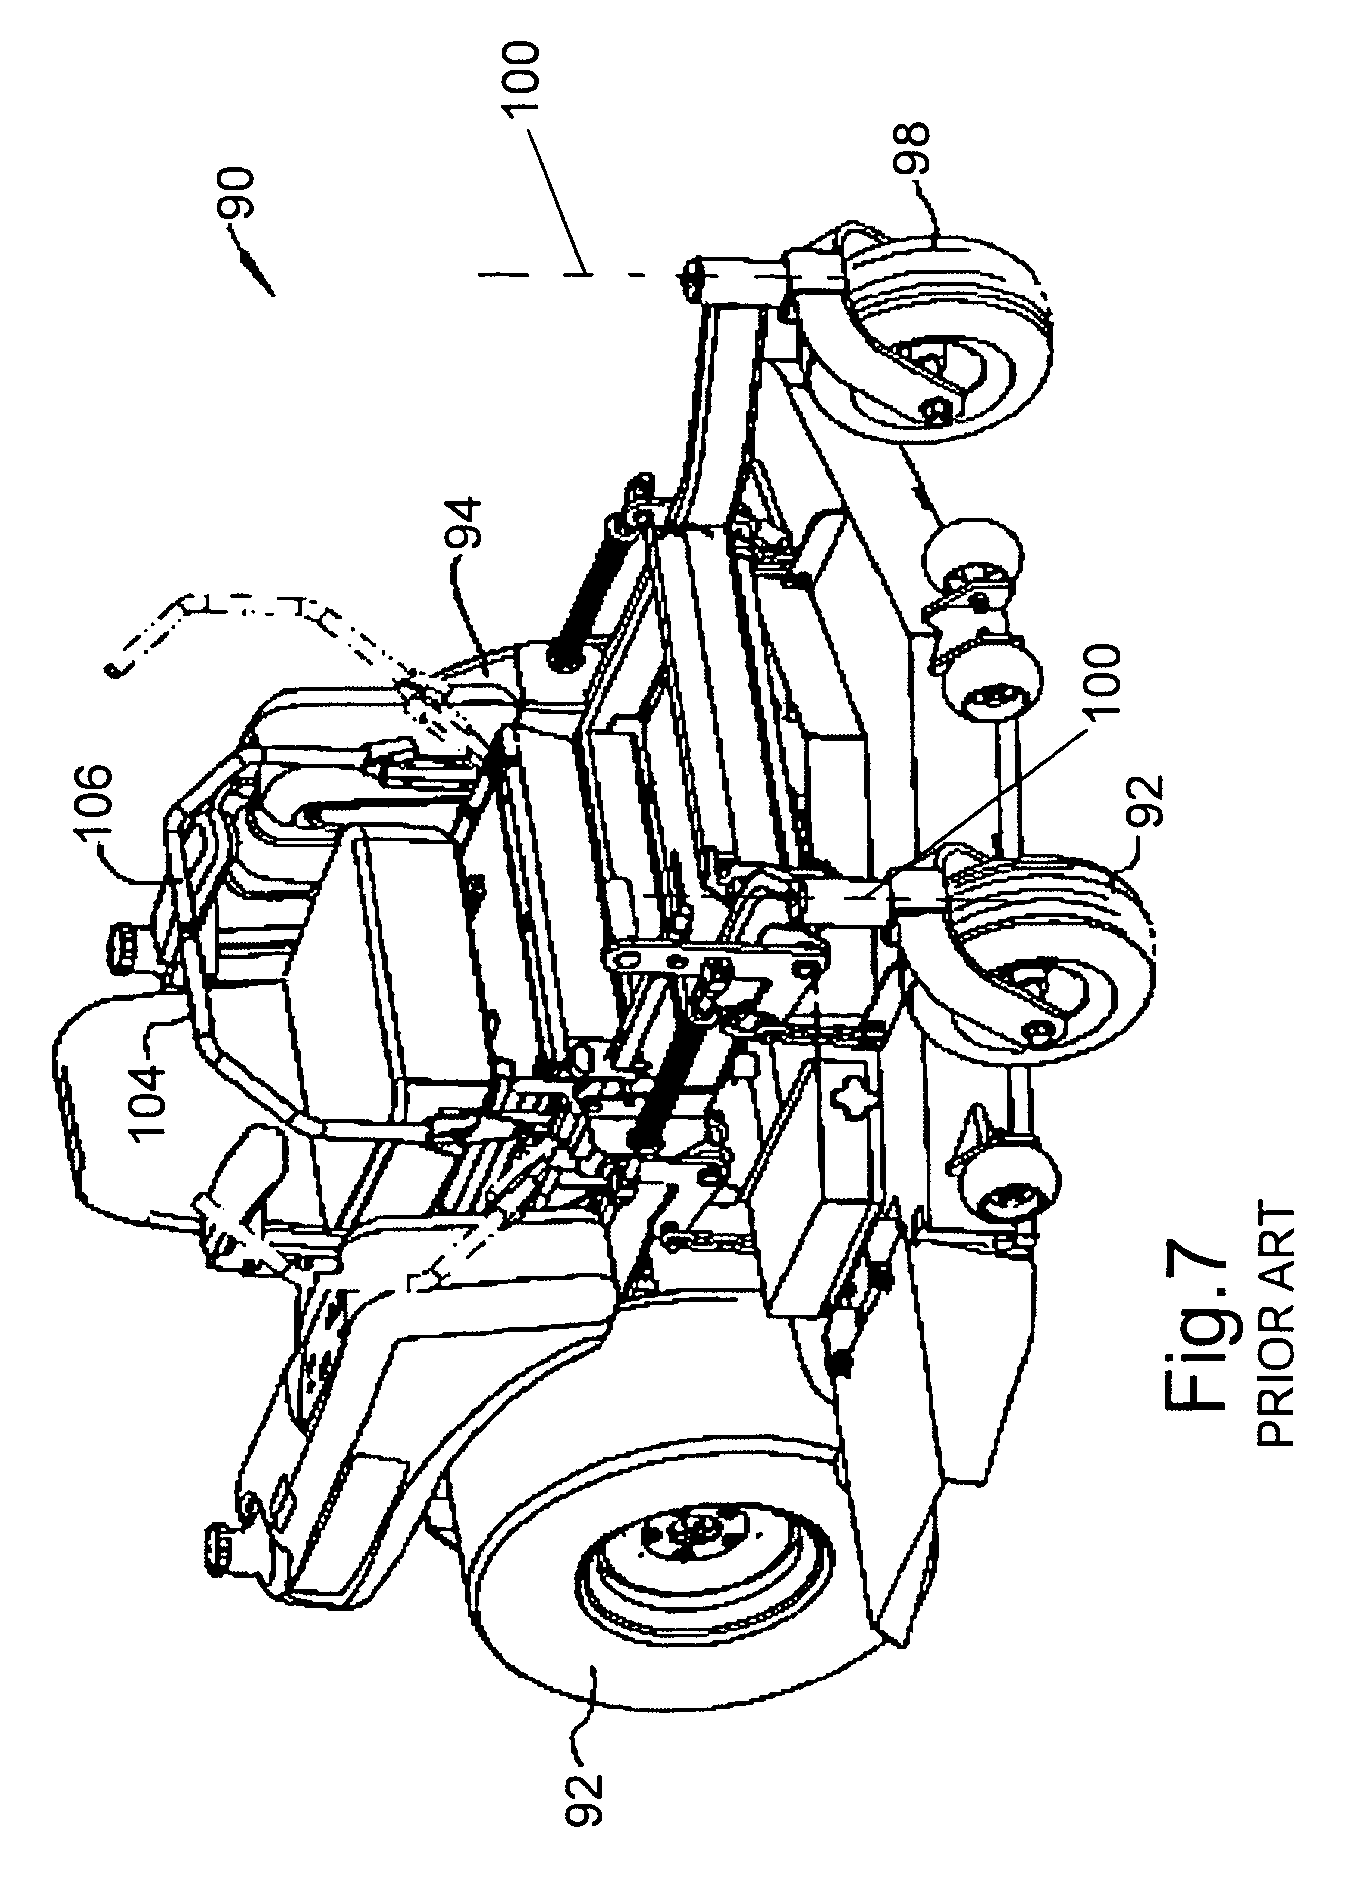 Xj550 Wiring Diagram together with Diagram Of Clutch Embly also Yamaha Bruin 350 Parts Diagram as well 5ne2c Yamaha 1971 360 Rt1 Just Bought Tring further Kawasaki Jet Ski Ignition Wiring Schematic. on yamaha qt50 wiring diagrams